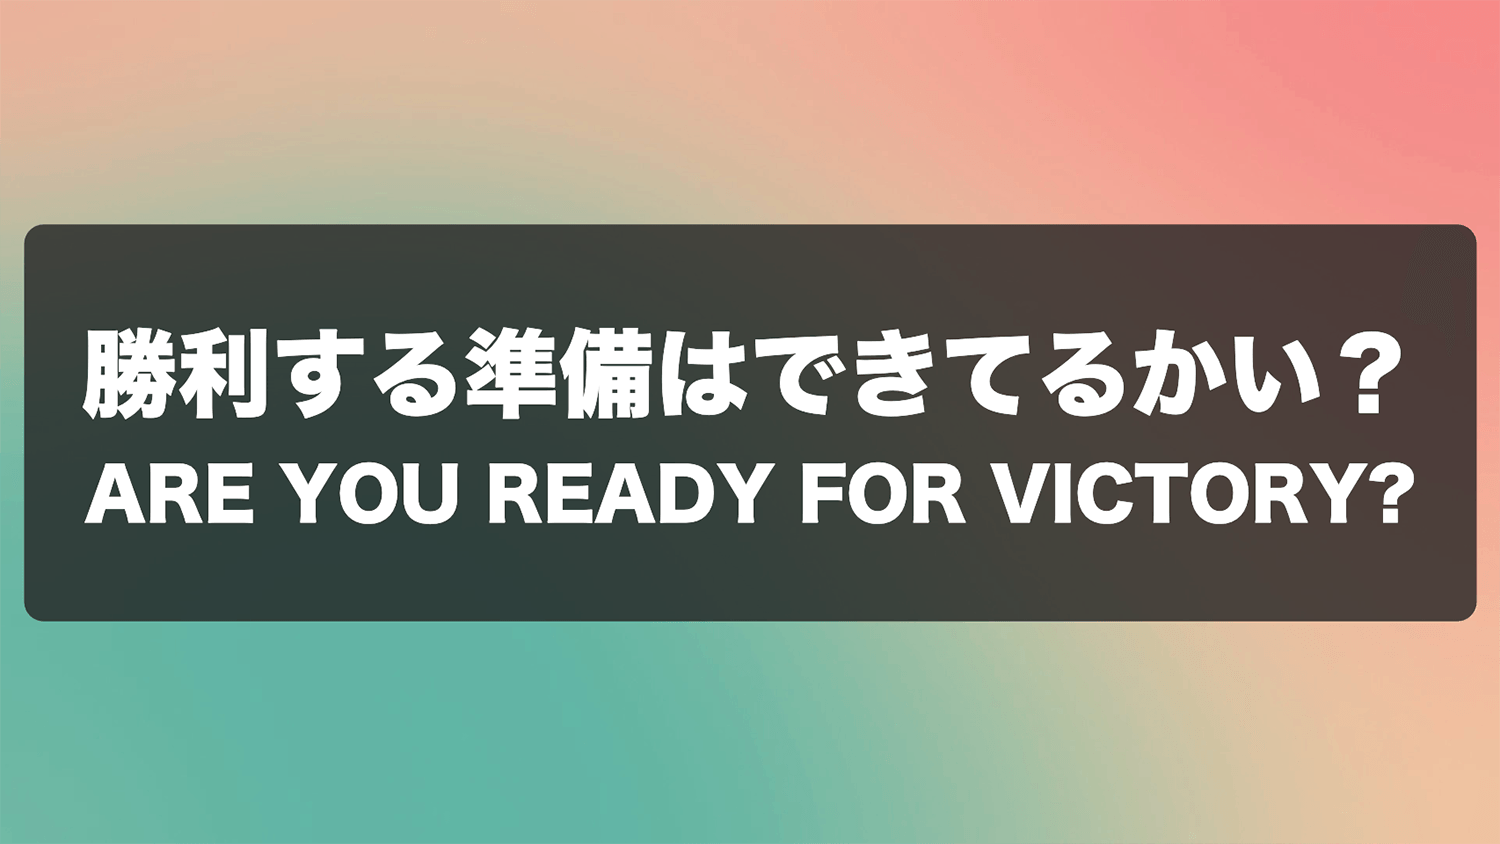 Are You Ready for Victory?